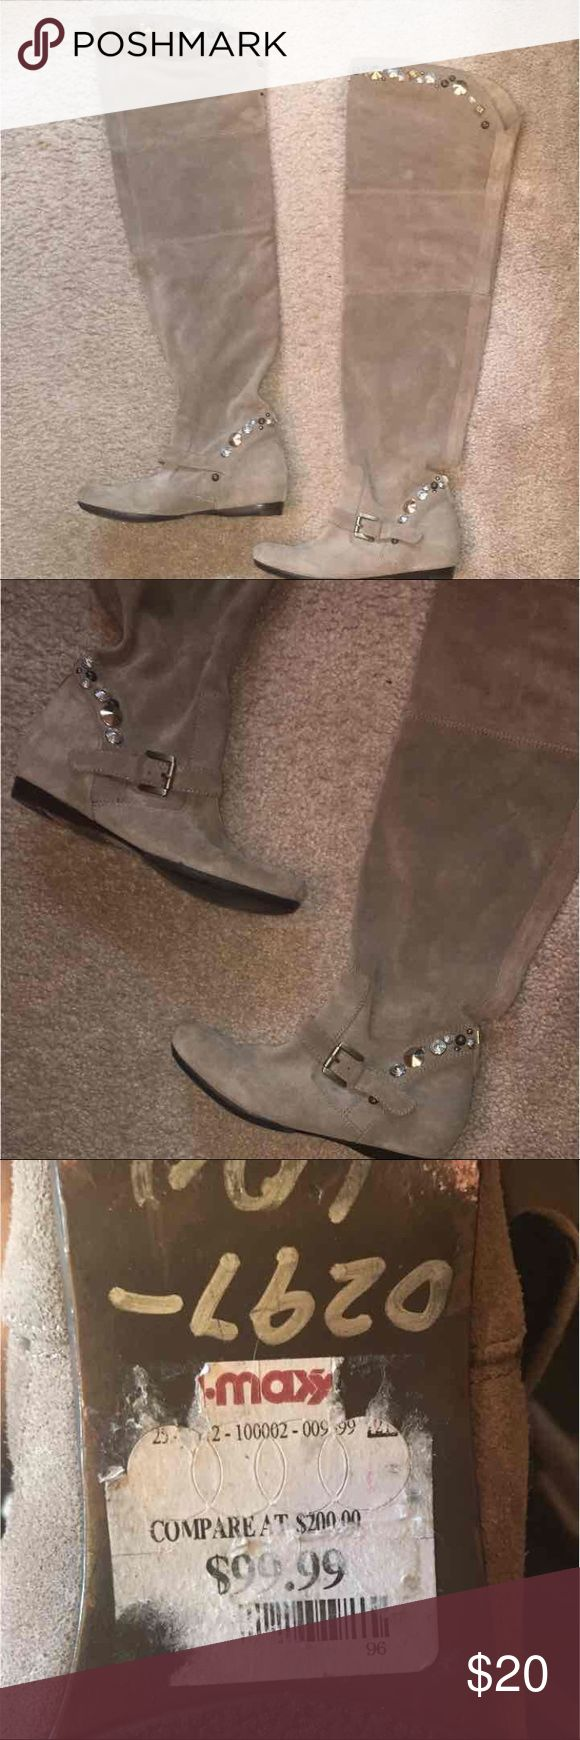 Over the knee brown suede boots Brown suede w/ stoned across knee and ankle area (none are missing) brand new condition, worn once Shoes Over the Knee Boots